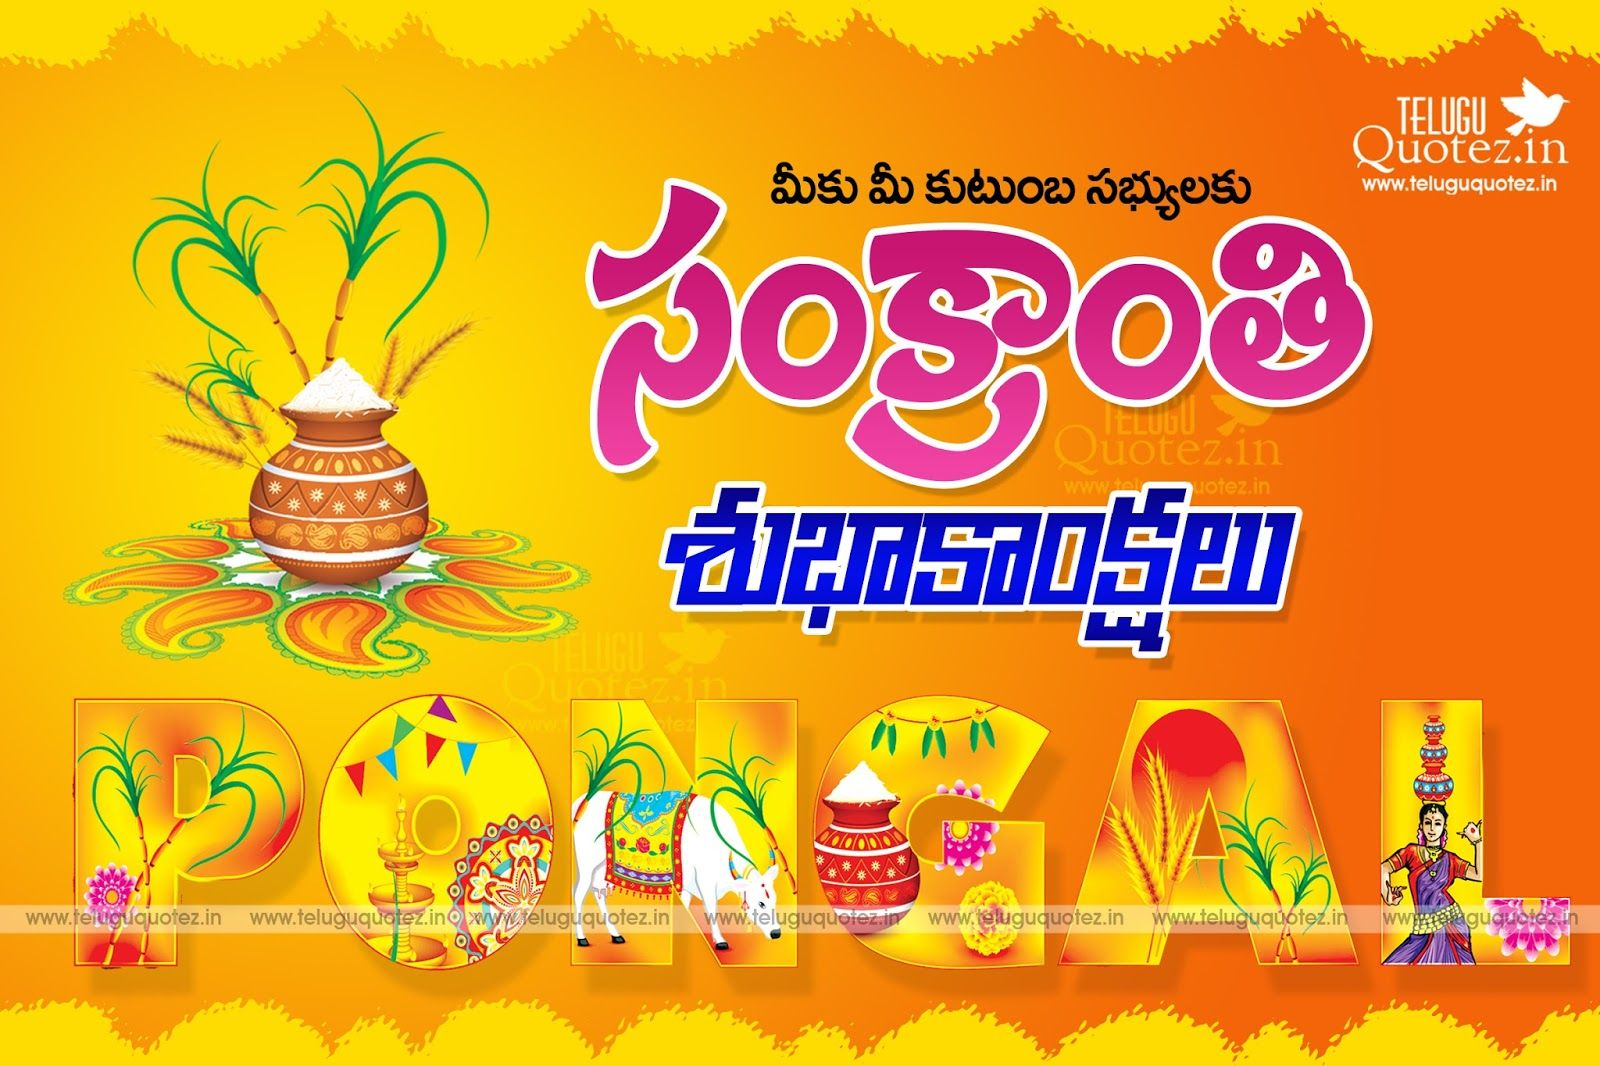 Happy sankranti telugu greetings and wishes quotes teluguquotezcopy happy sankranti greetings in telugu picture quotes m4hsunfo